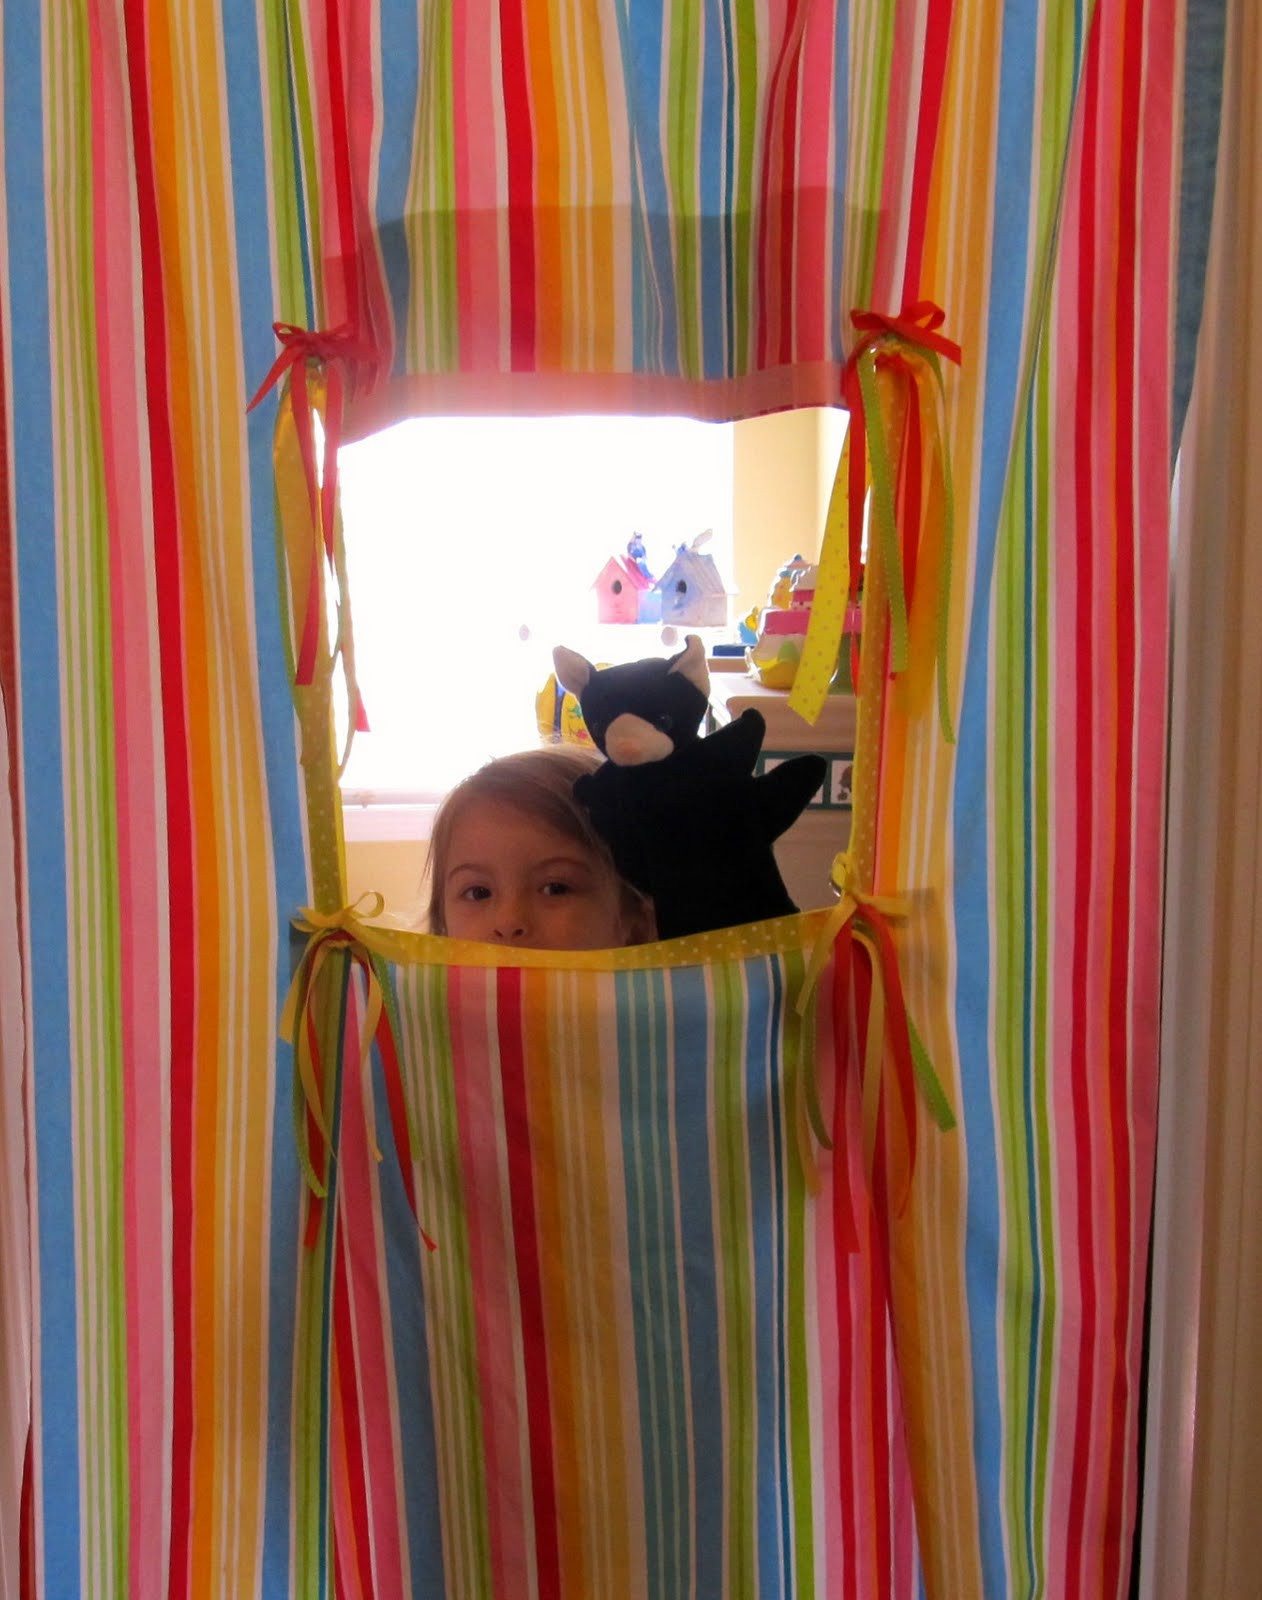 Best ideas about DIY Puppet Theater . Save or Pin Love & Sugar Kisses DIY Puppet Theater Now.